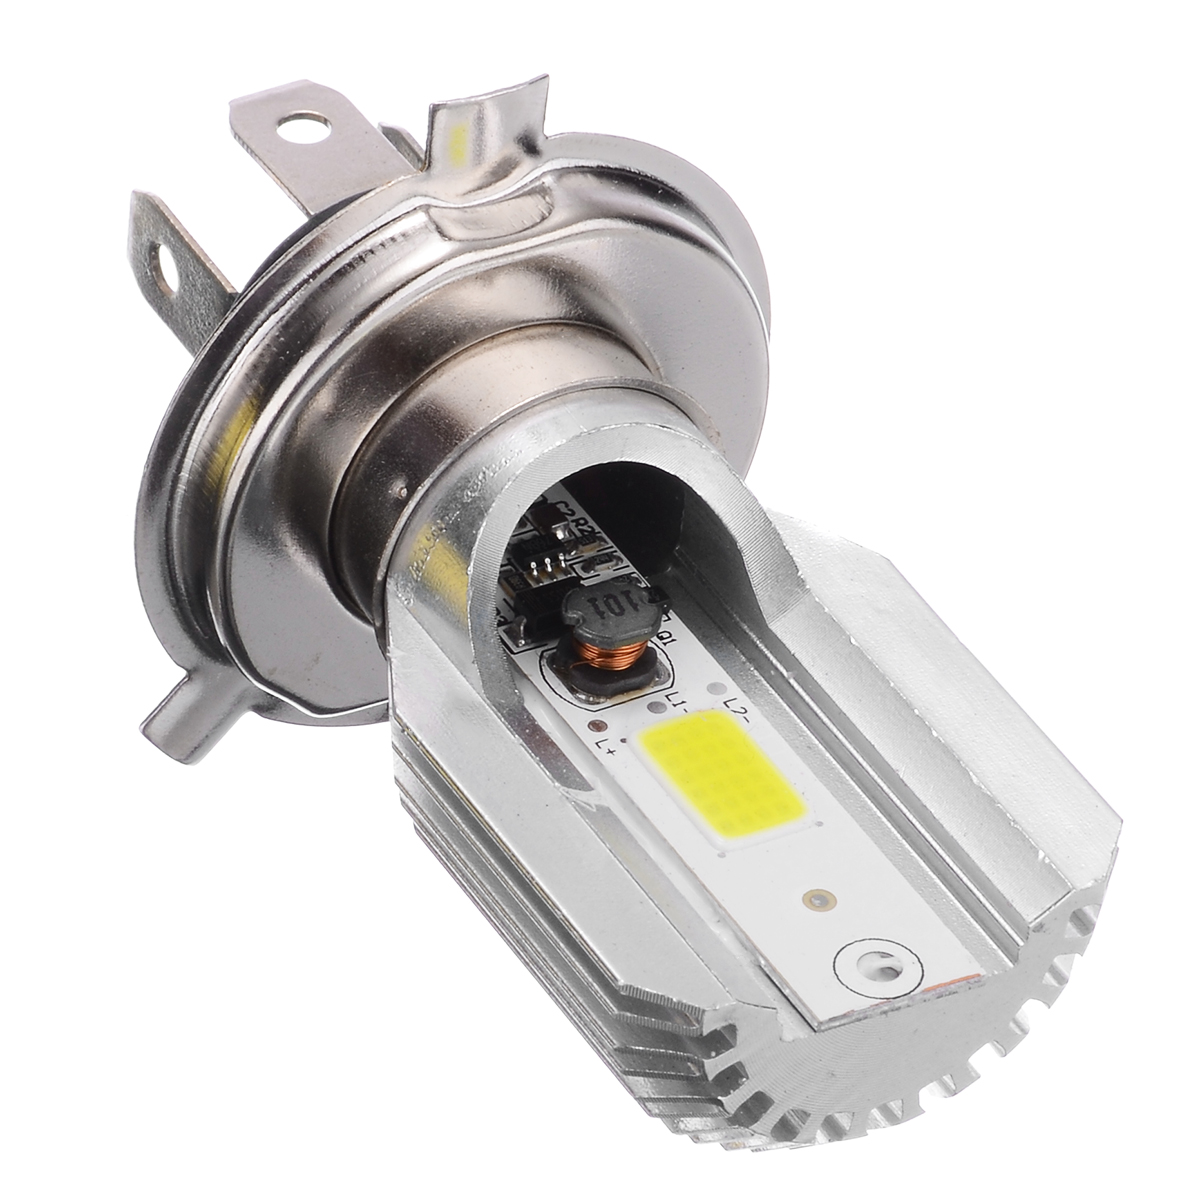 Image 2 - 1pc DC12V H4 LED Motorcycle Motorbike Headlight Moto Fog Light Lamp Single sided Bulb 800 2000LM 6000K For Moped Scooter ATV